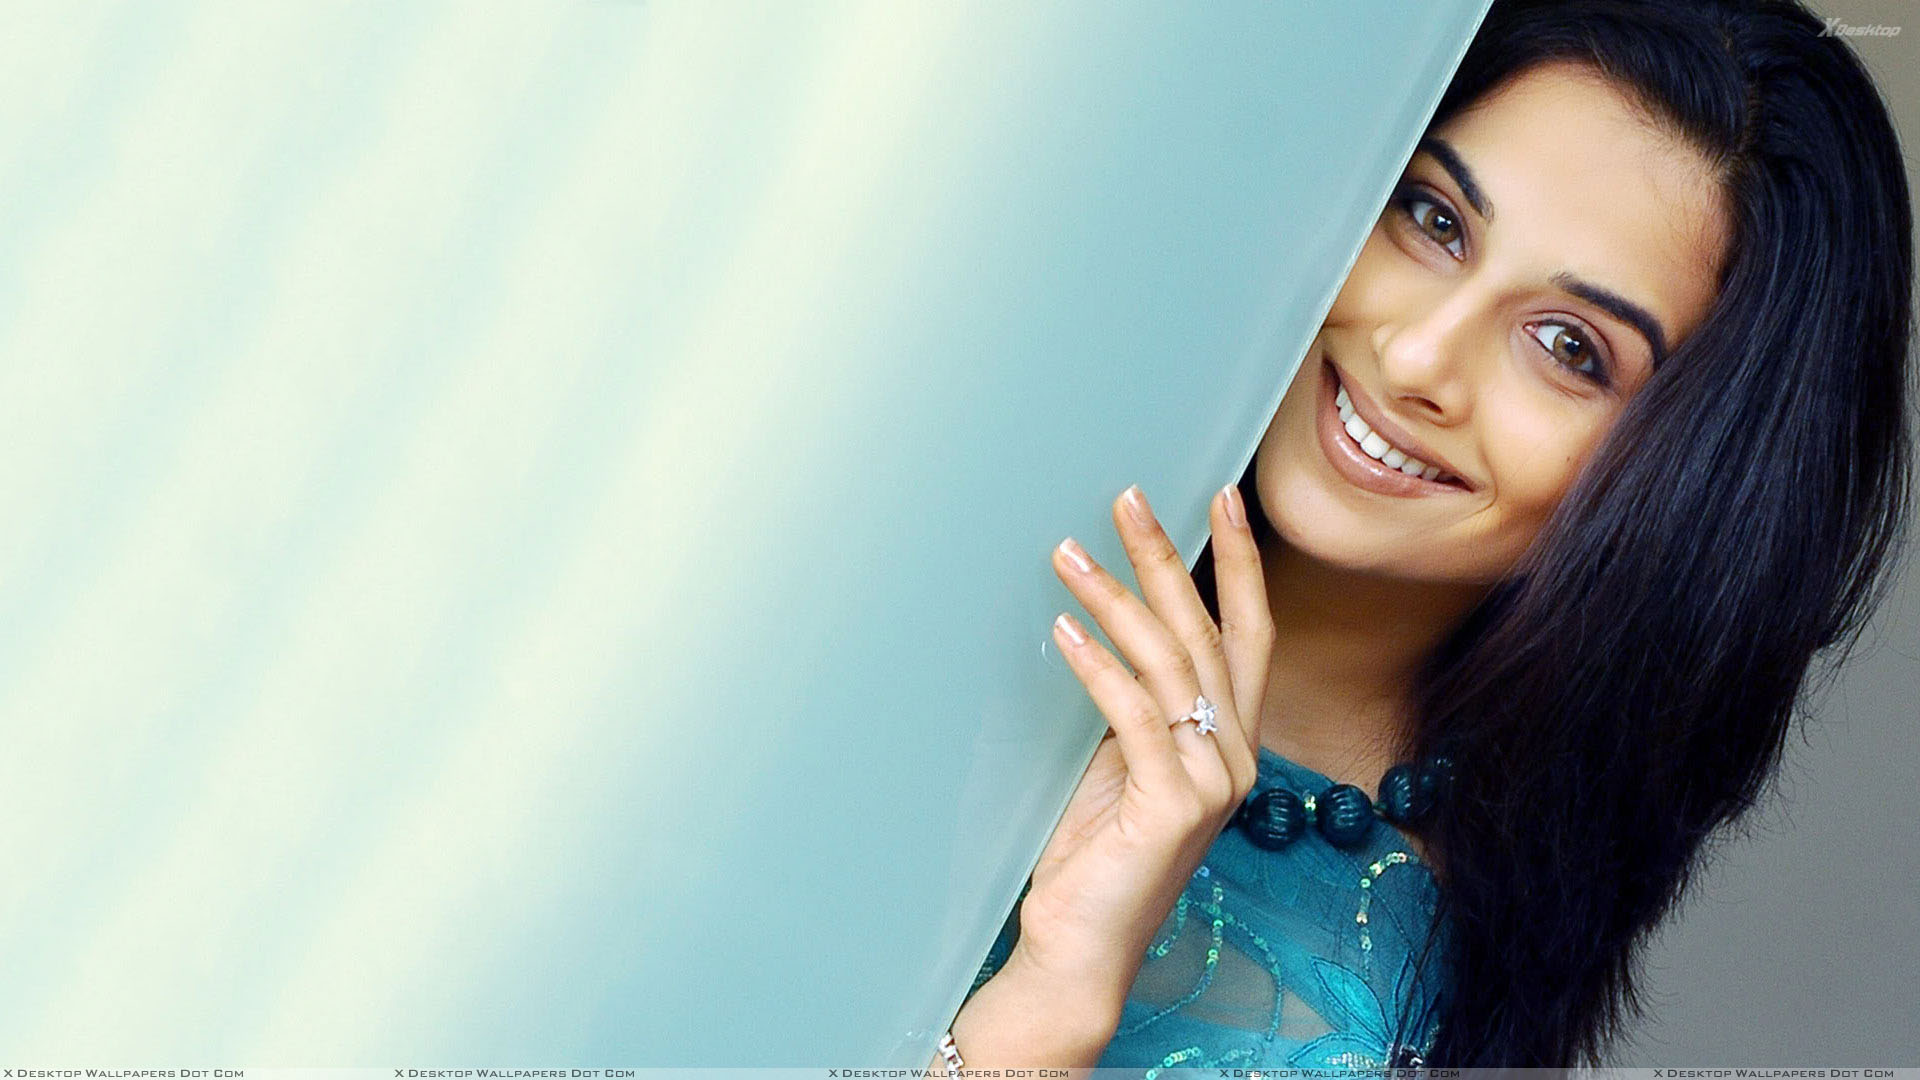 vidya balan smiling in blue dress and cute eyes wallpaper